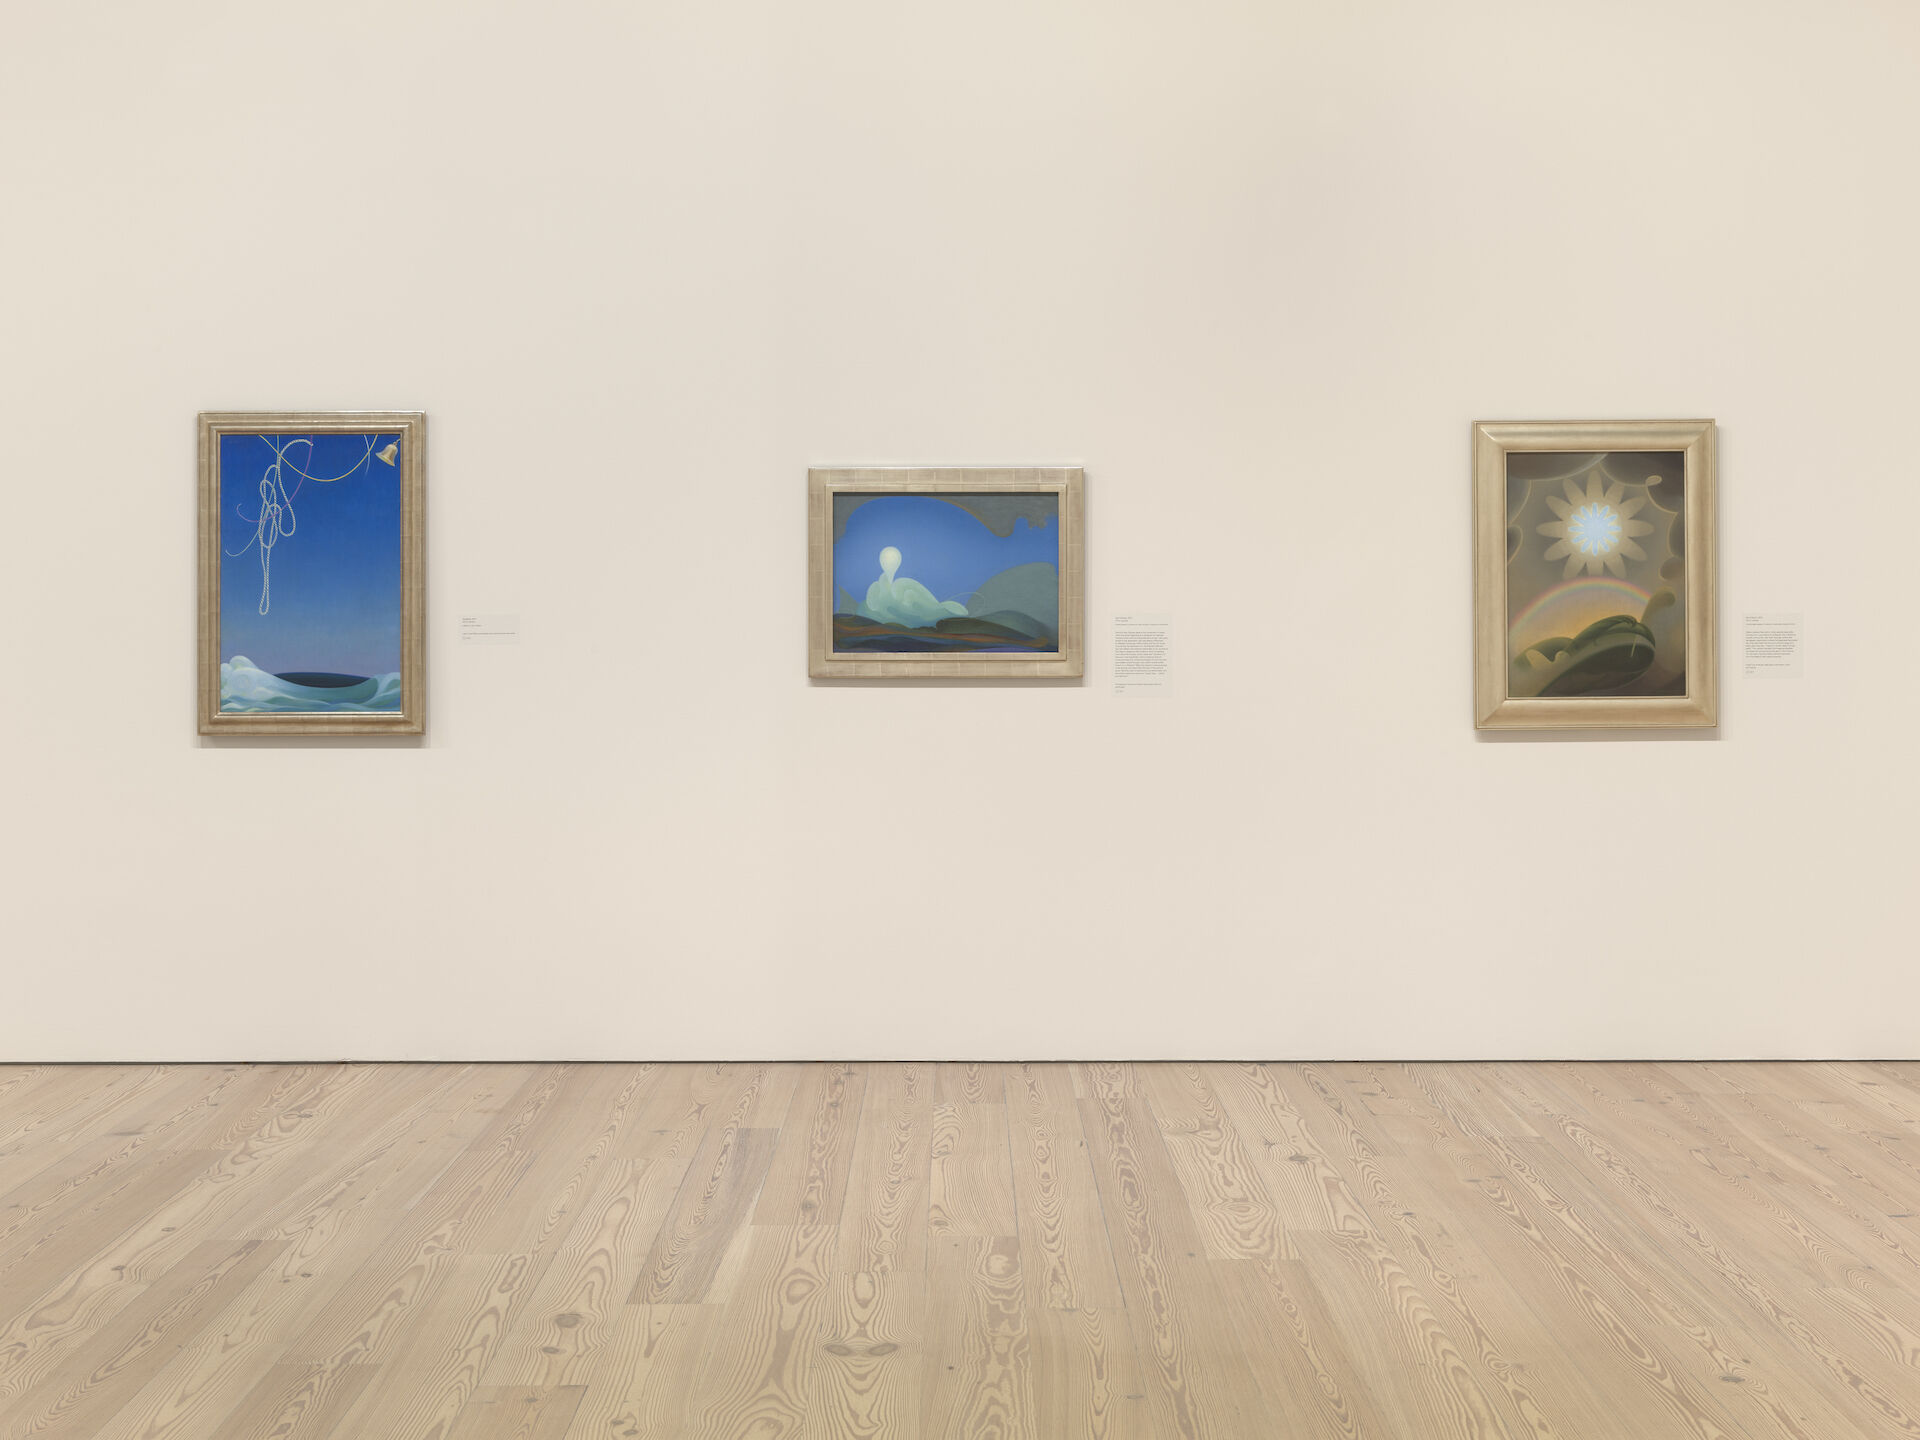 Three paintings by Agnes Pelton on a white wall. From left to right: Voyaging, 1931; Sea Change, 1931; Sand Storm, 1932.